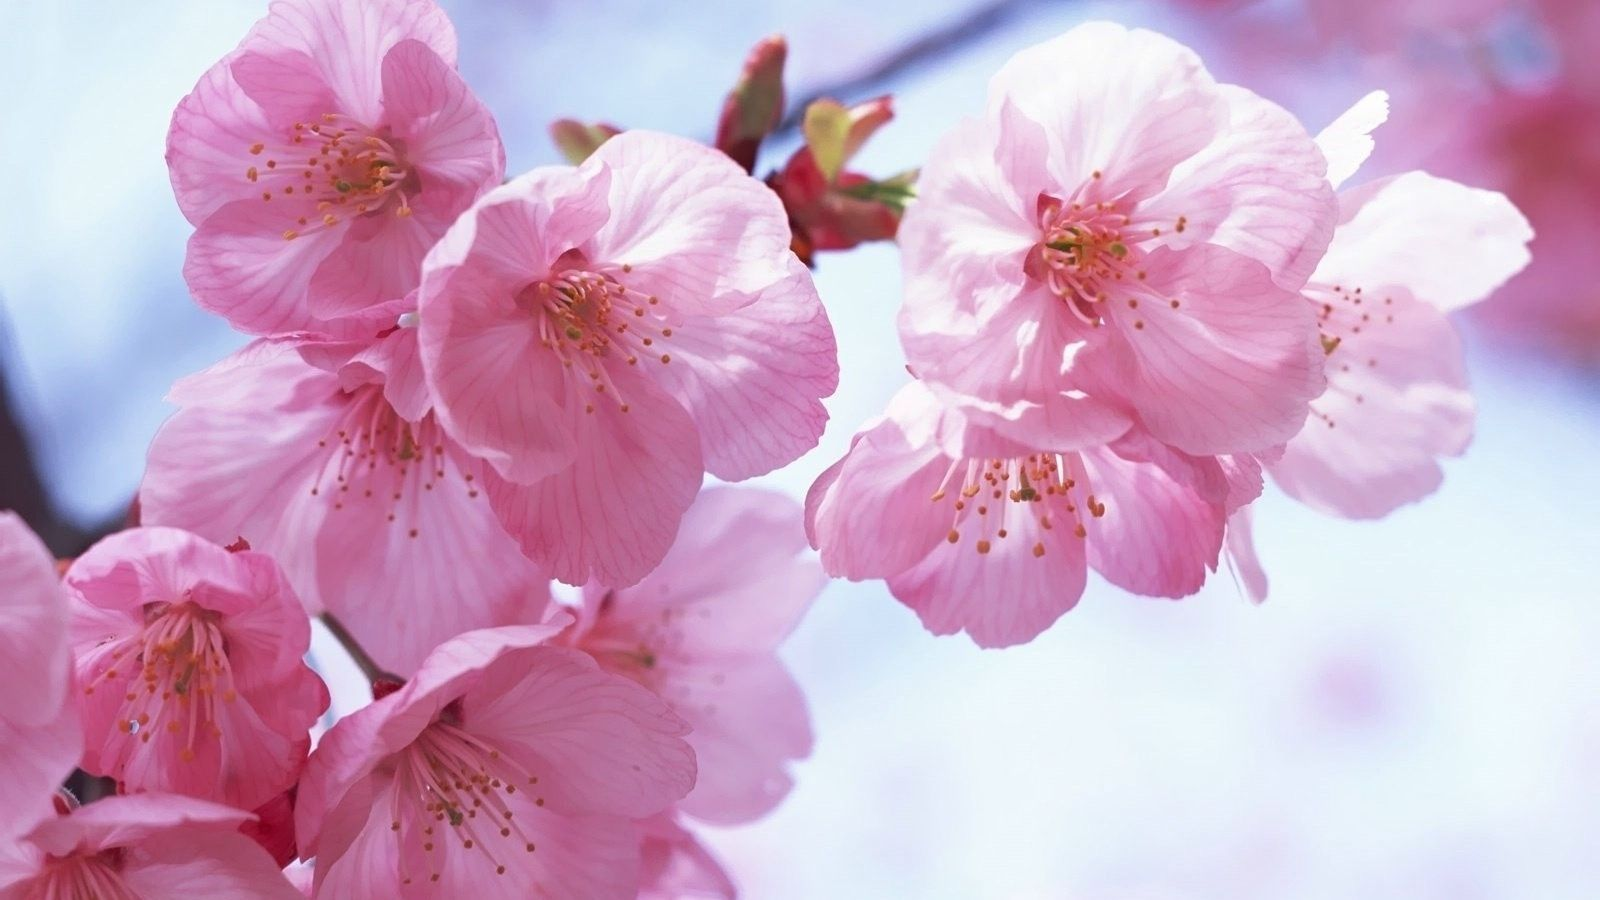 Spring flowers images of flowers hd flowers wallpapers beautiful flowers izmirmasajfo Choice Image